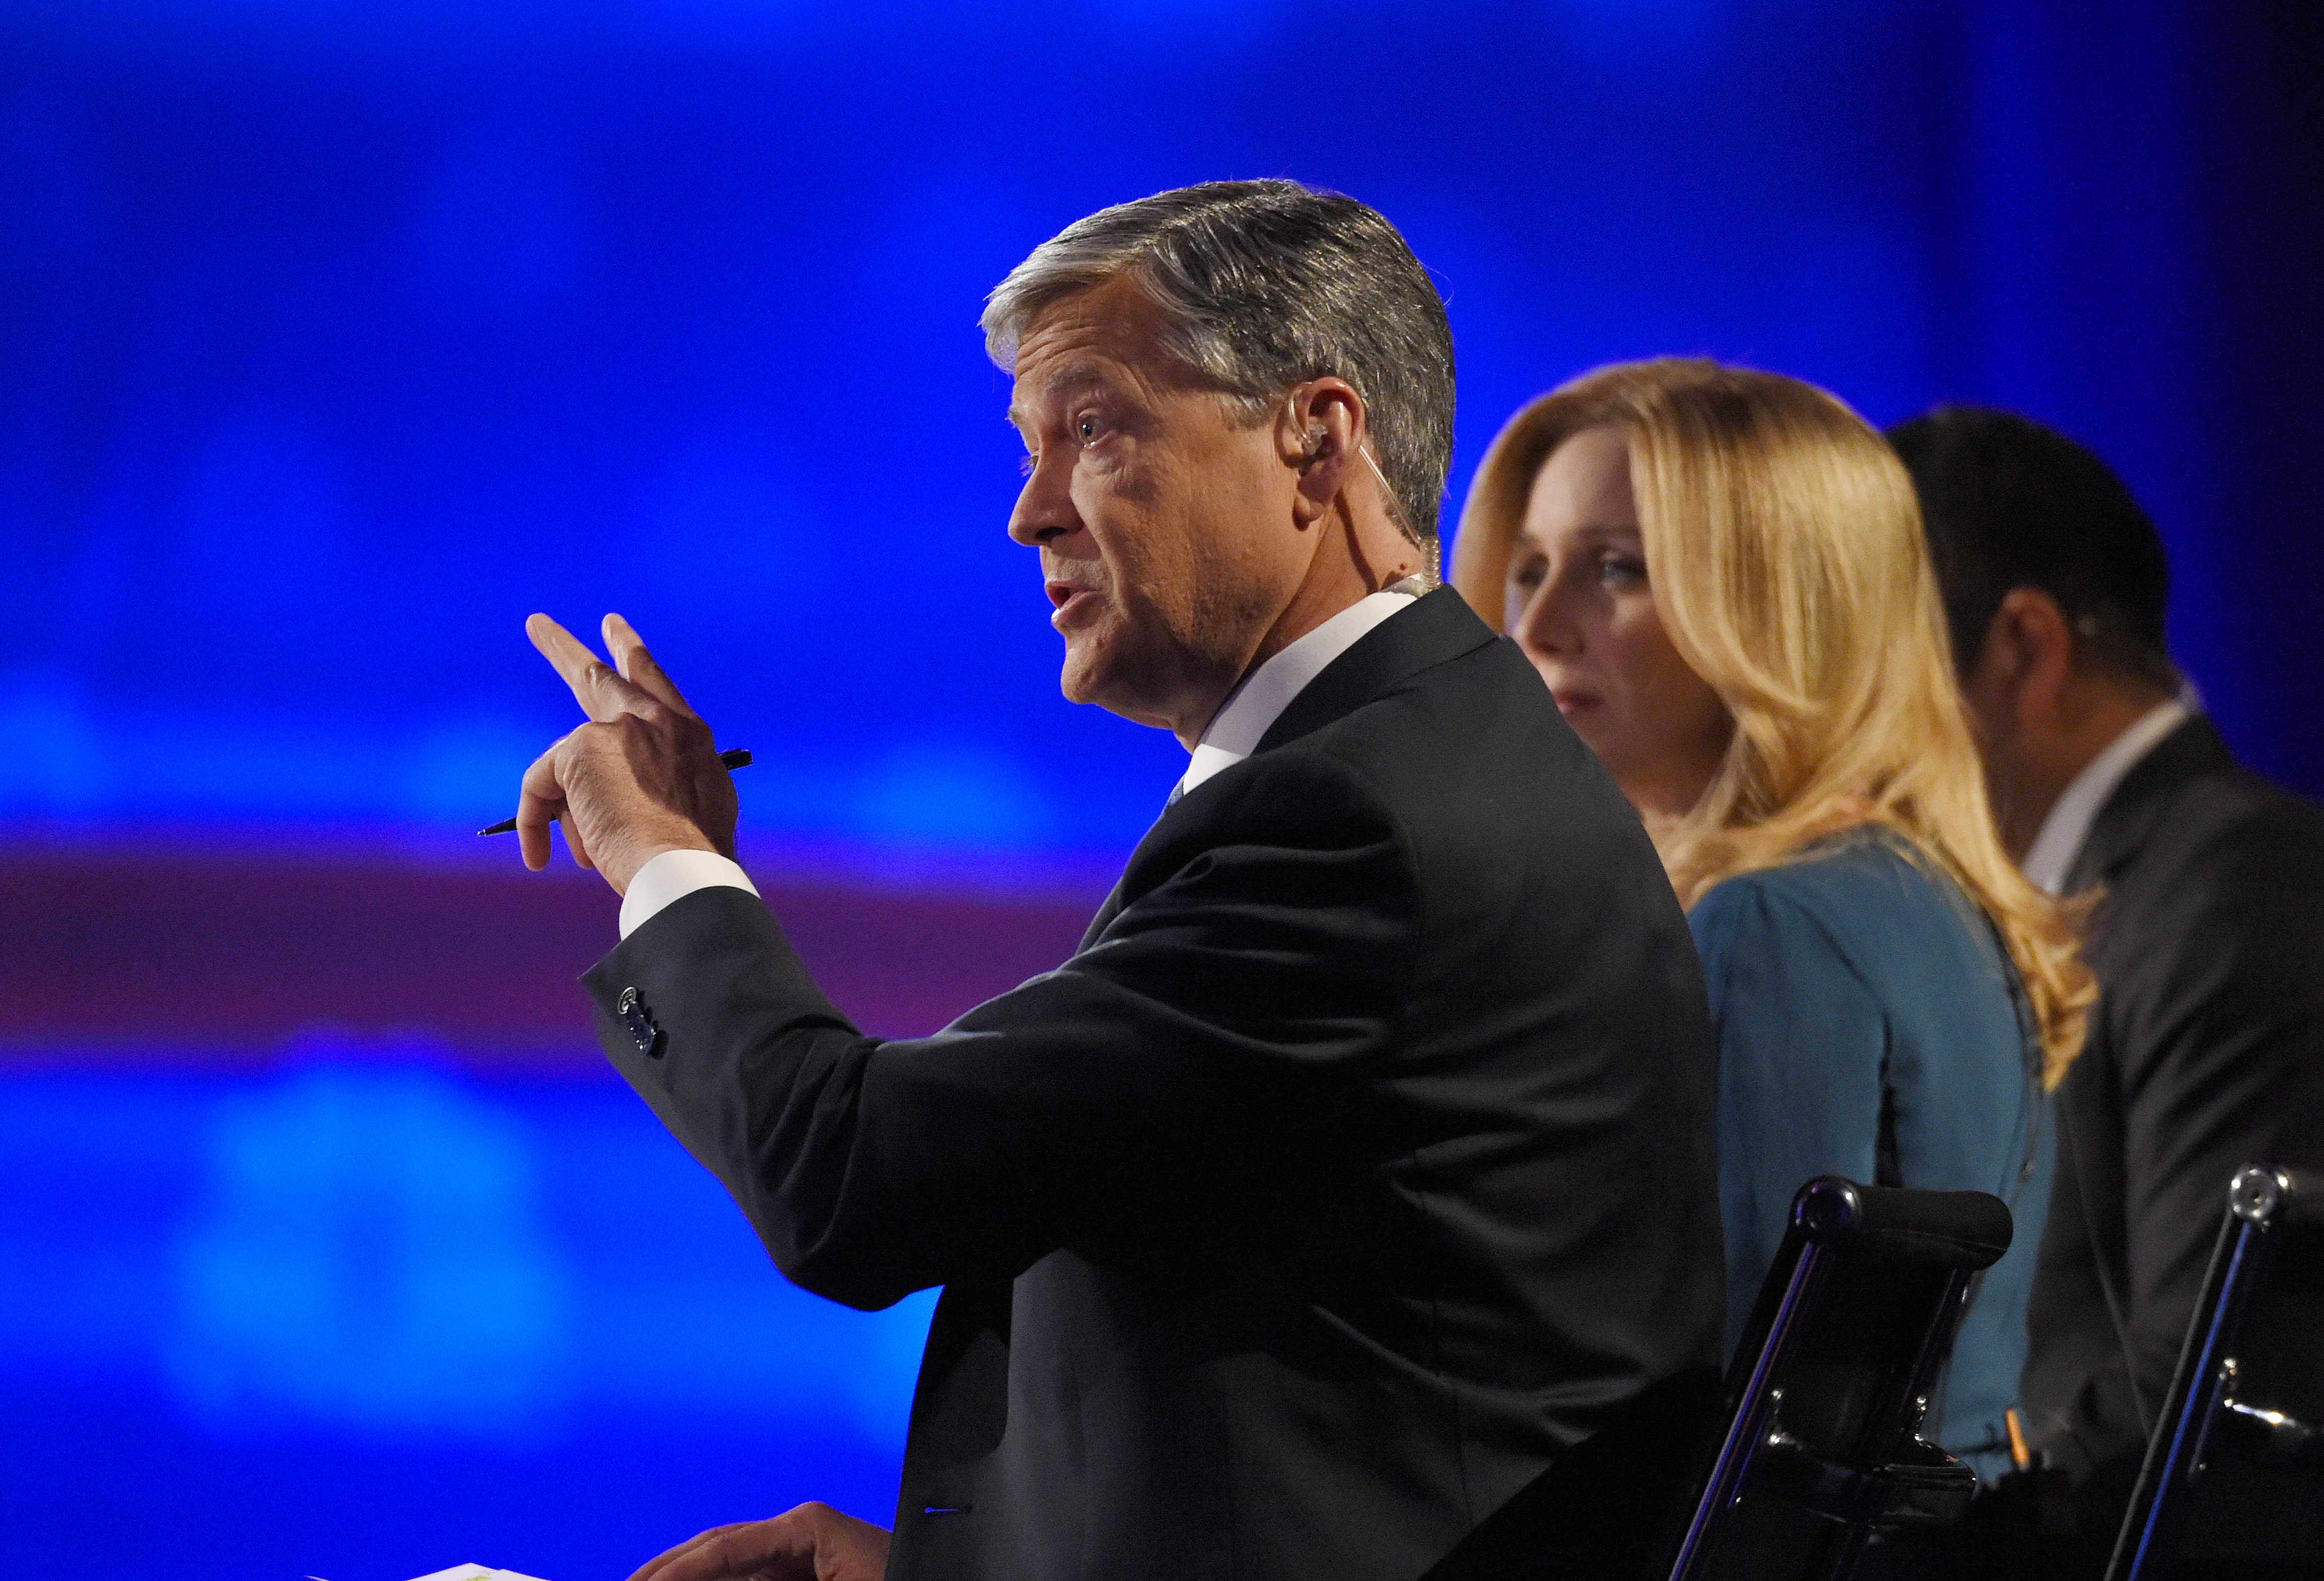 Debate moderators moderator John Harwood, left, moderator Becky Quick, center, and moderator Carl Quintanilla appear during the CNBC Republican presidential debate at the University of Colorado, Wednesday, Oct. 28, 2015.